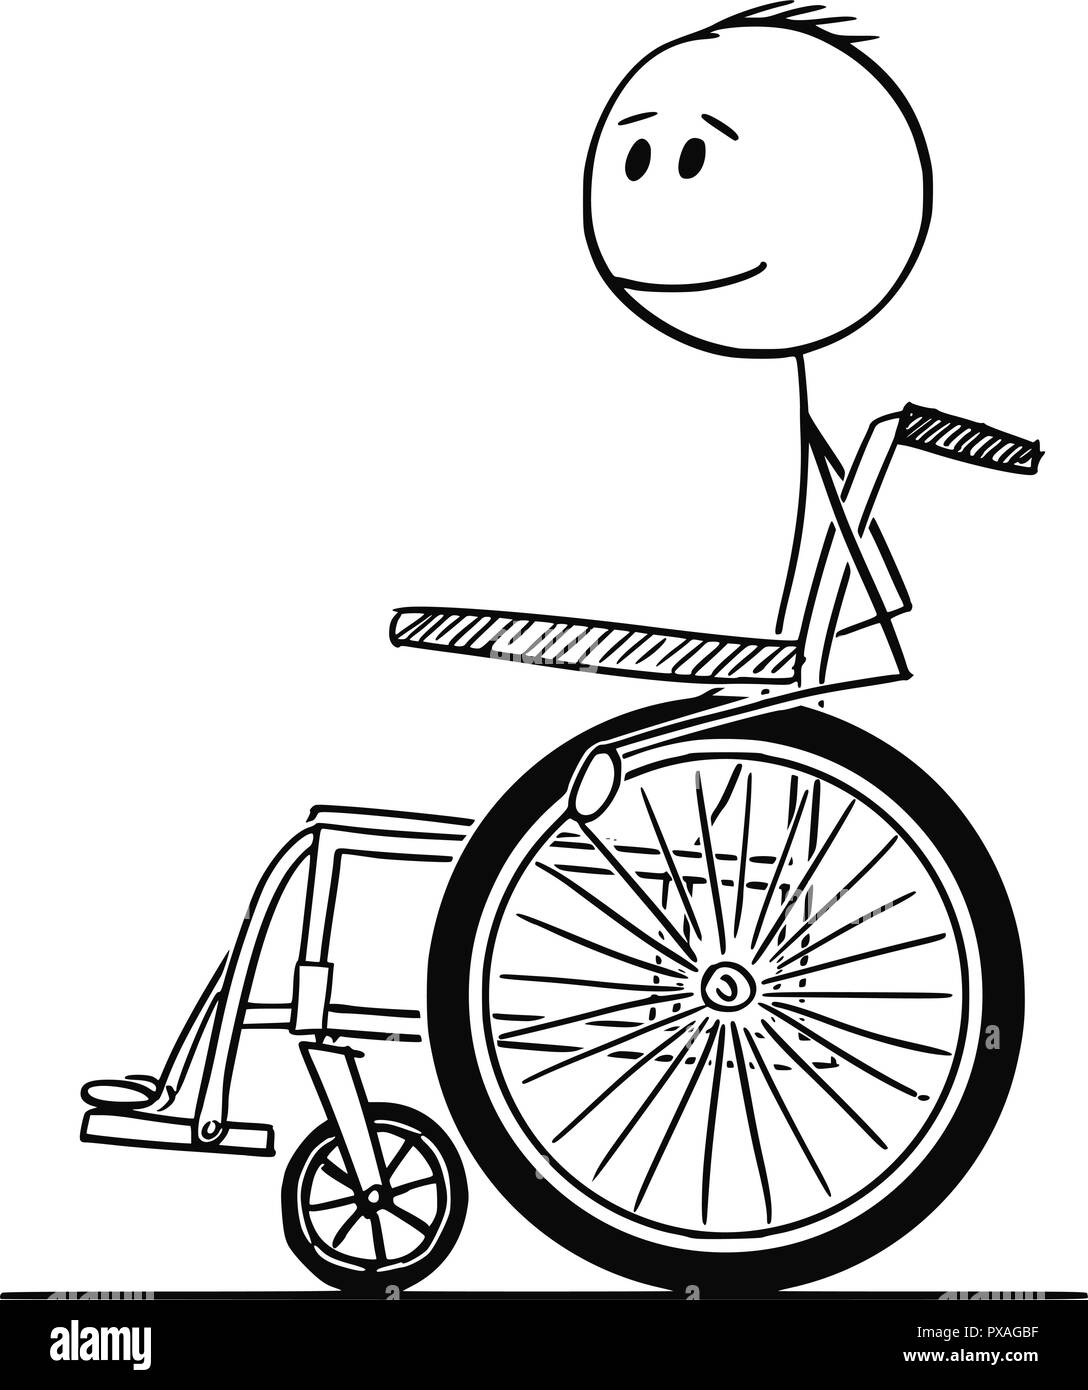 Cartoon of Smiling Disabled Man Sitting on Wheelchair - Stock Image